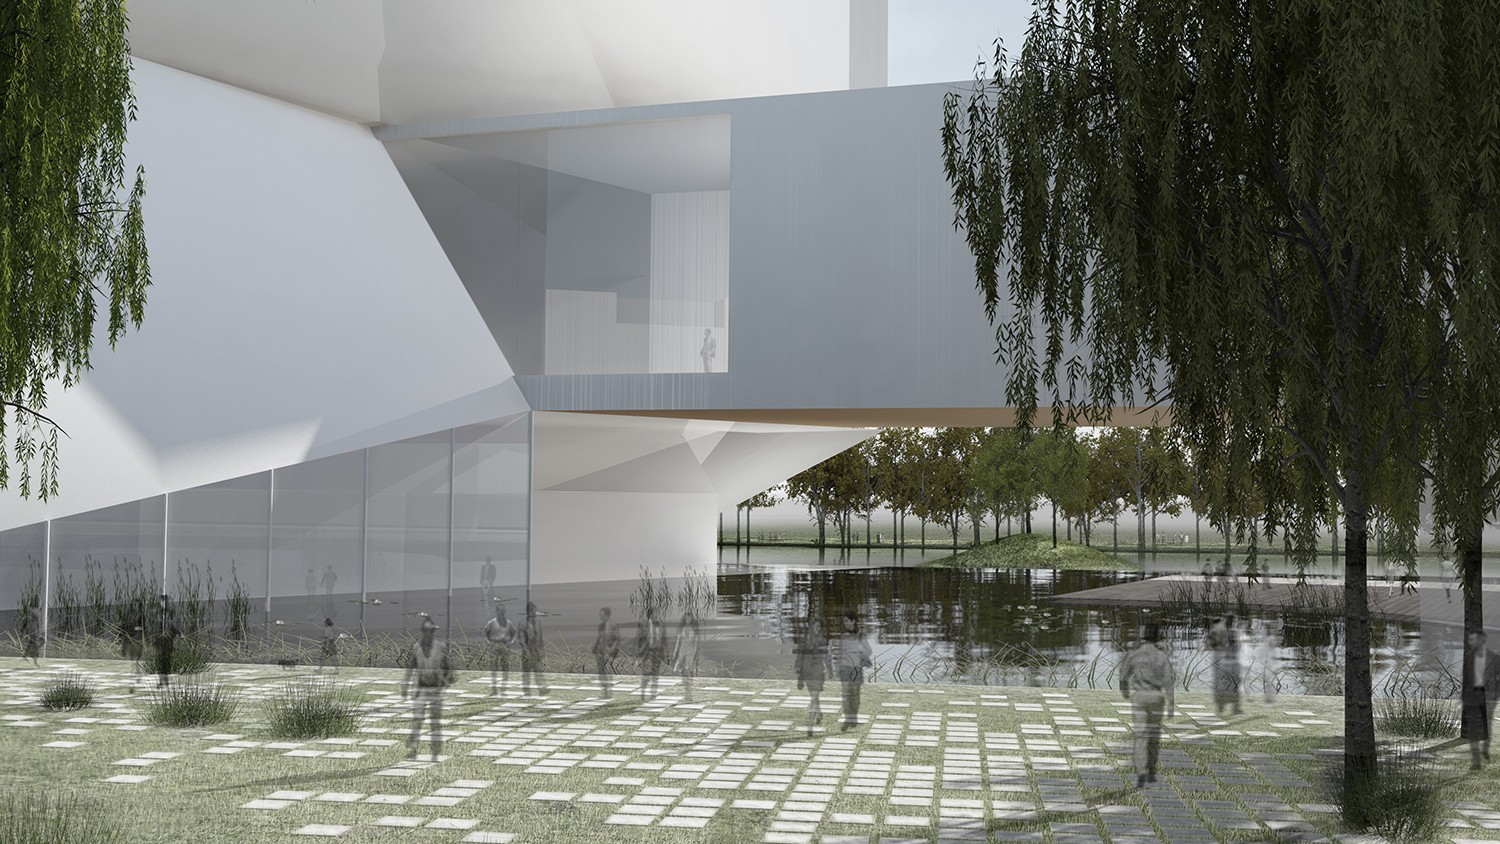 https://s3.us-east-2.amazonaws.com/steven-holl/uploads/projects/project-images/StevenHollArchitects_Qingdao_20131022_South-cube_edited_03_Final_WH.jpg